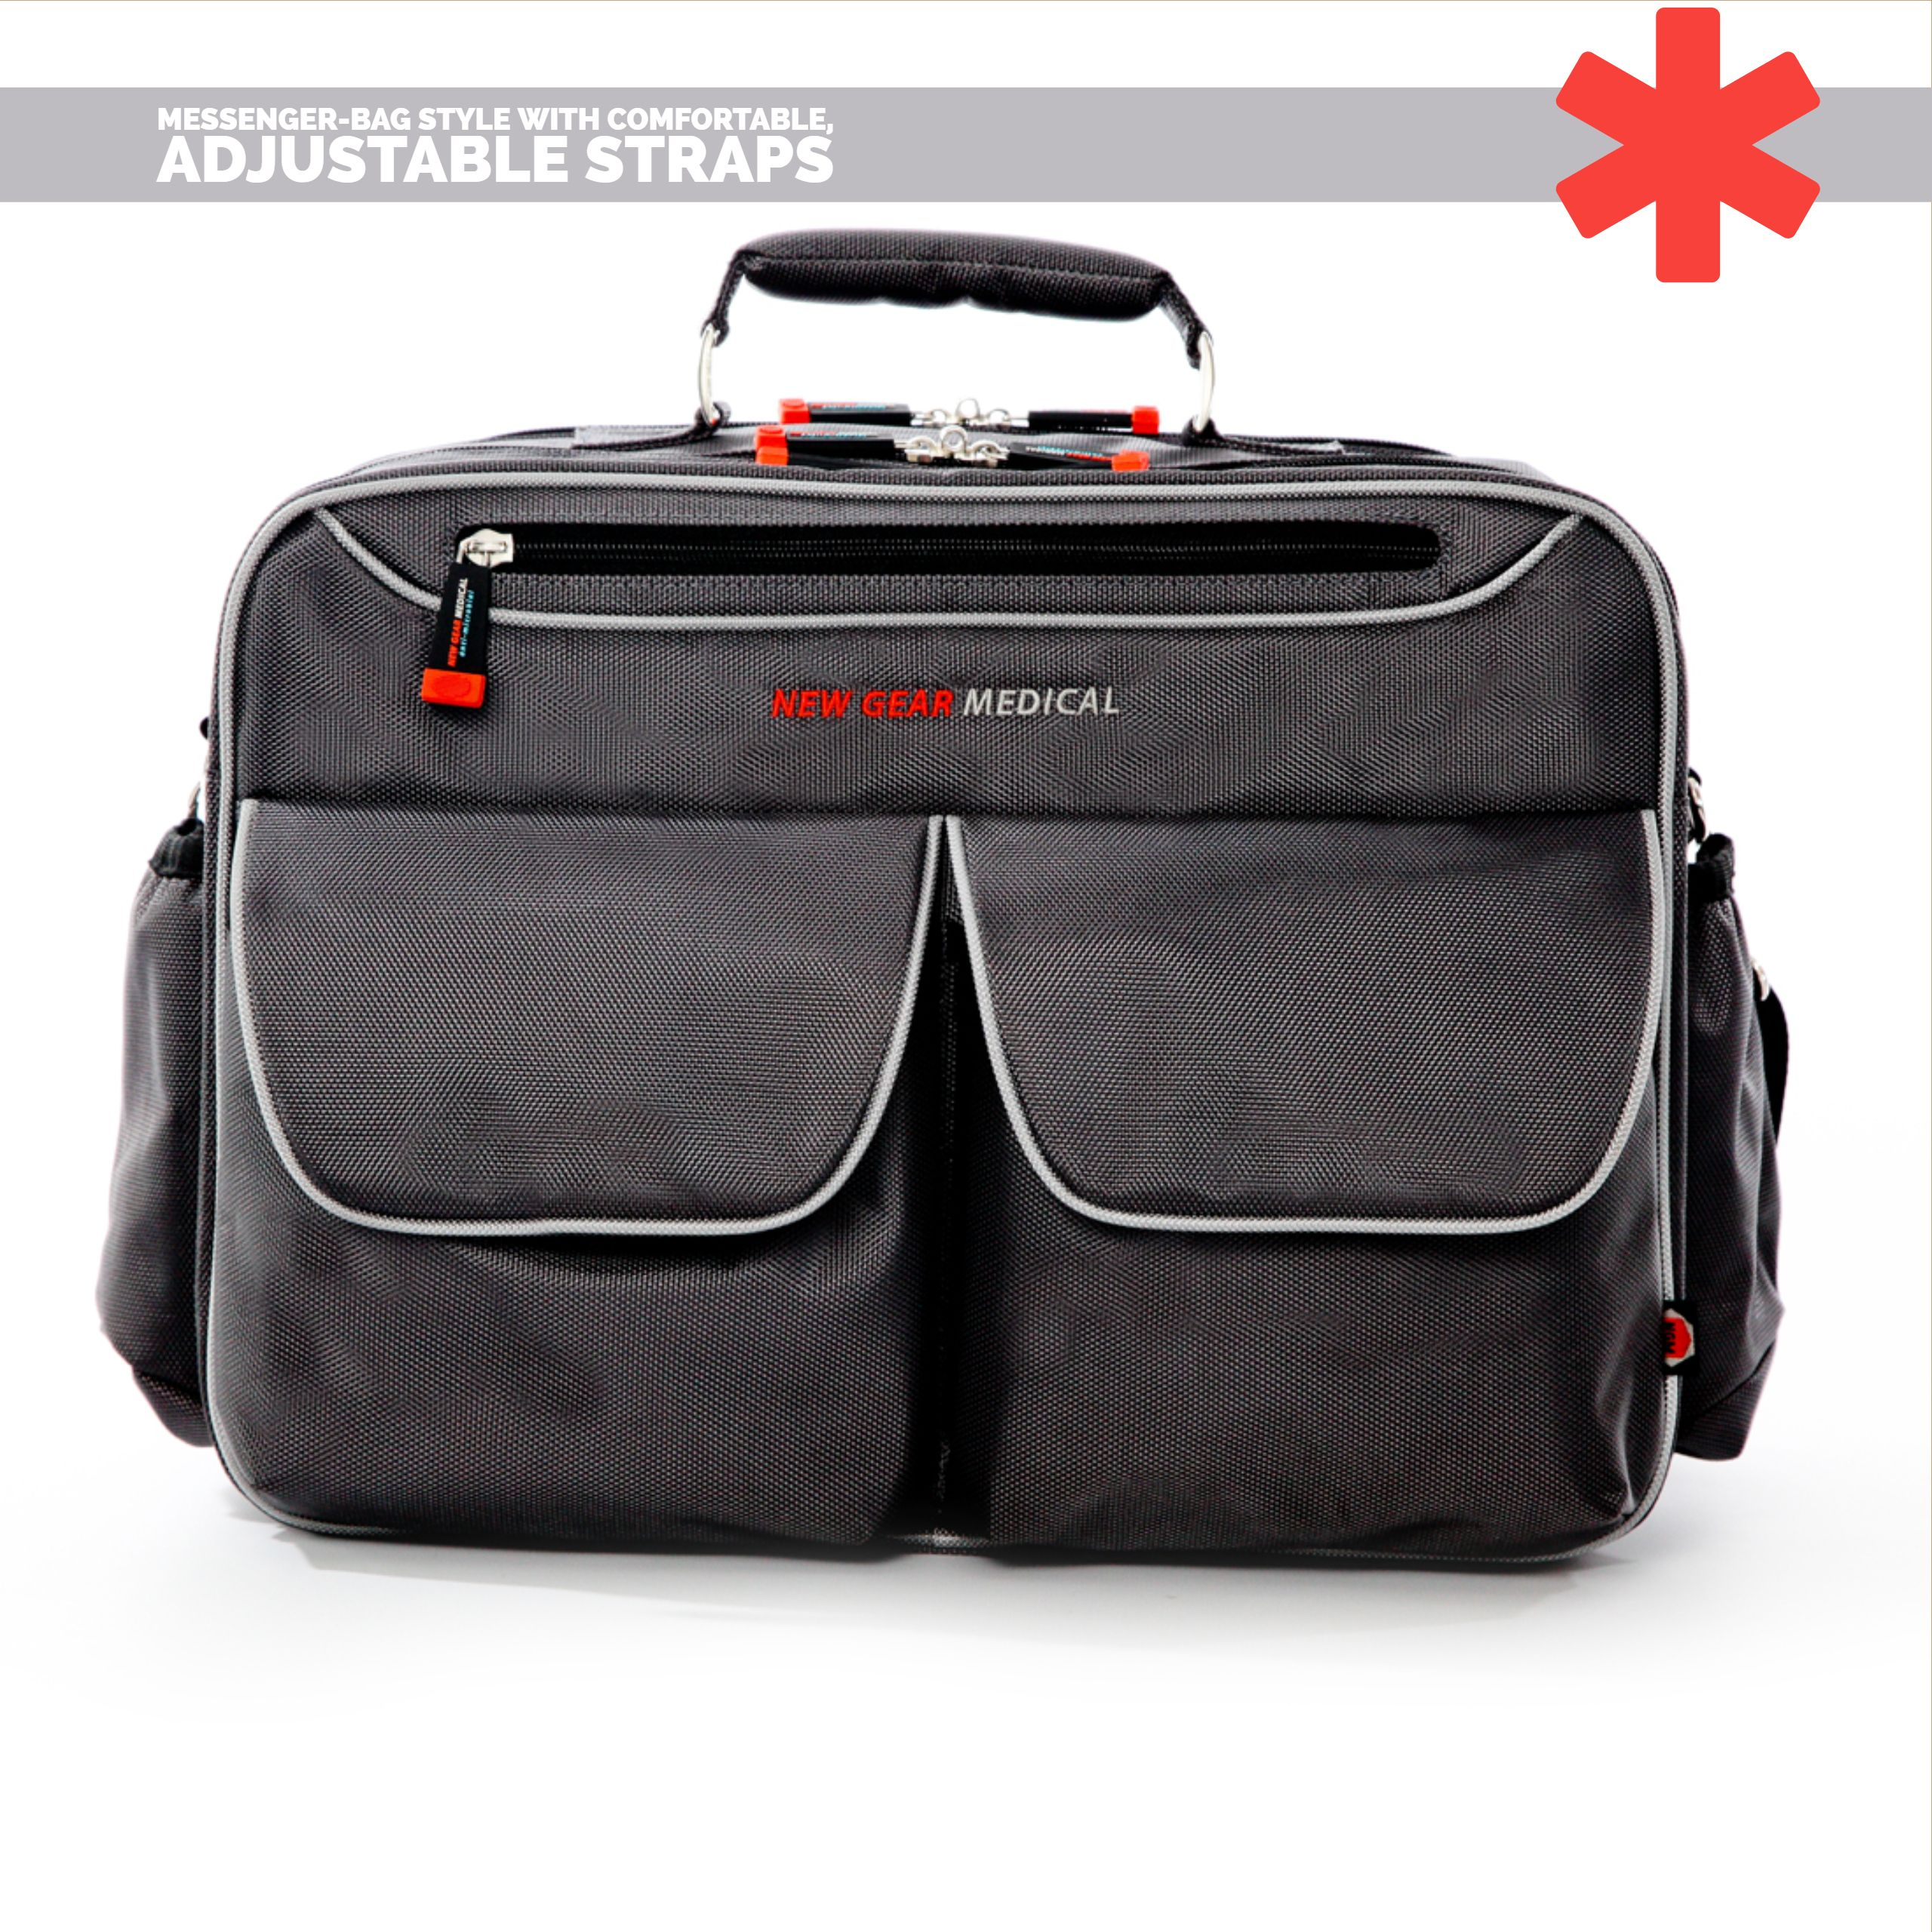 New Gear Medical The Guardian 2.0 - Deluxe Medical Bag